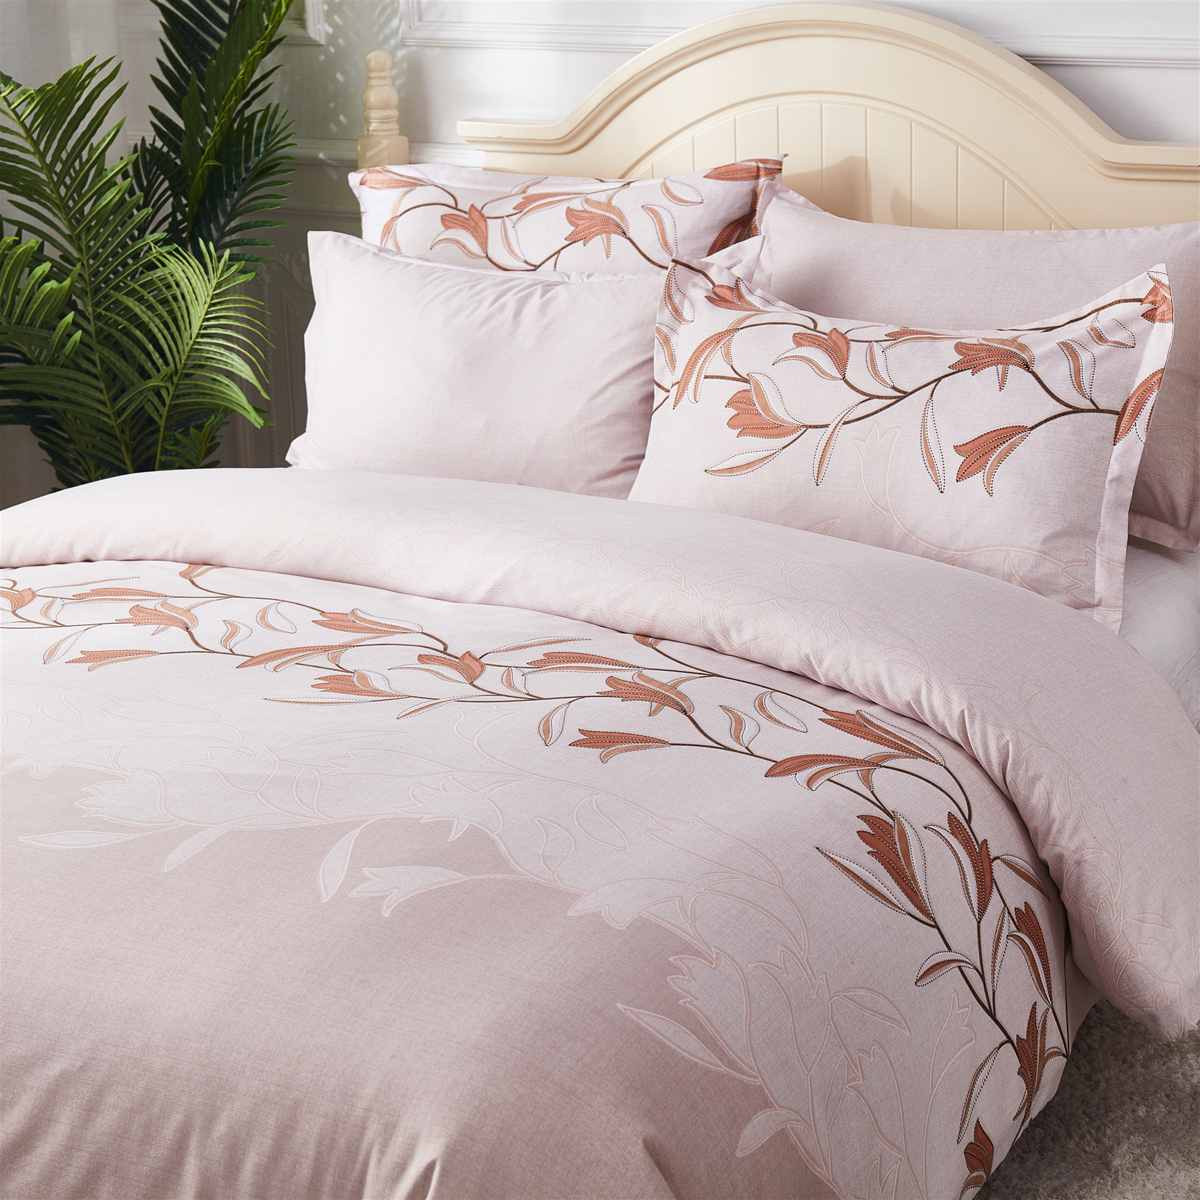 3D Flowers Duvet Cover Sets Queen King Comforter Bedding Sets With Pillowcase